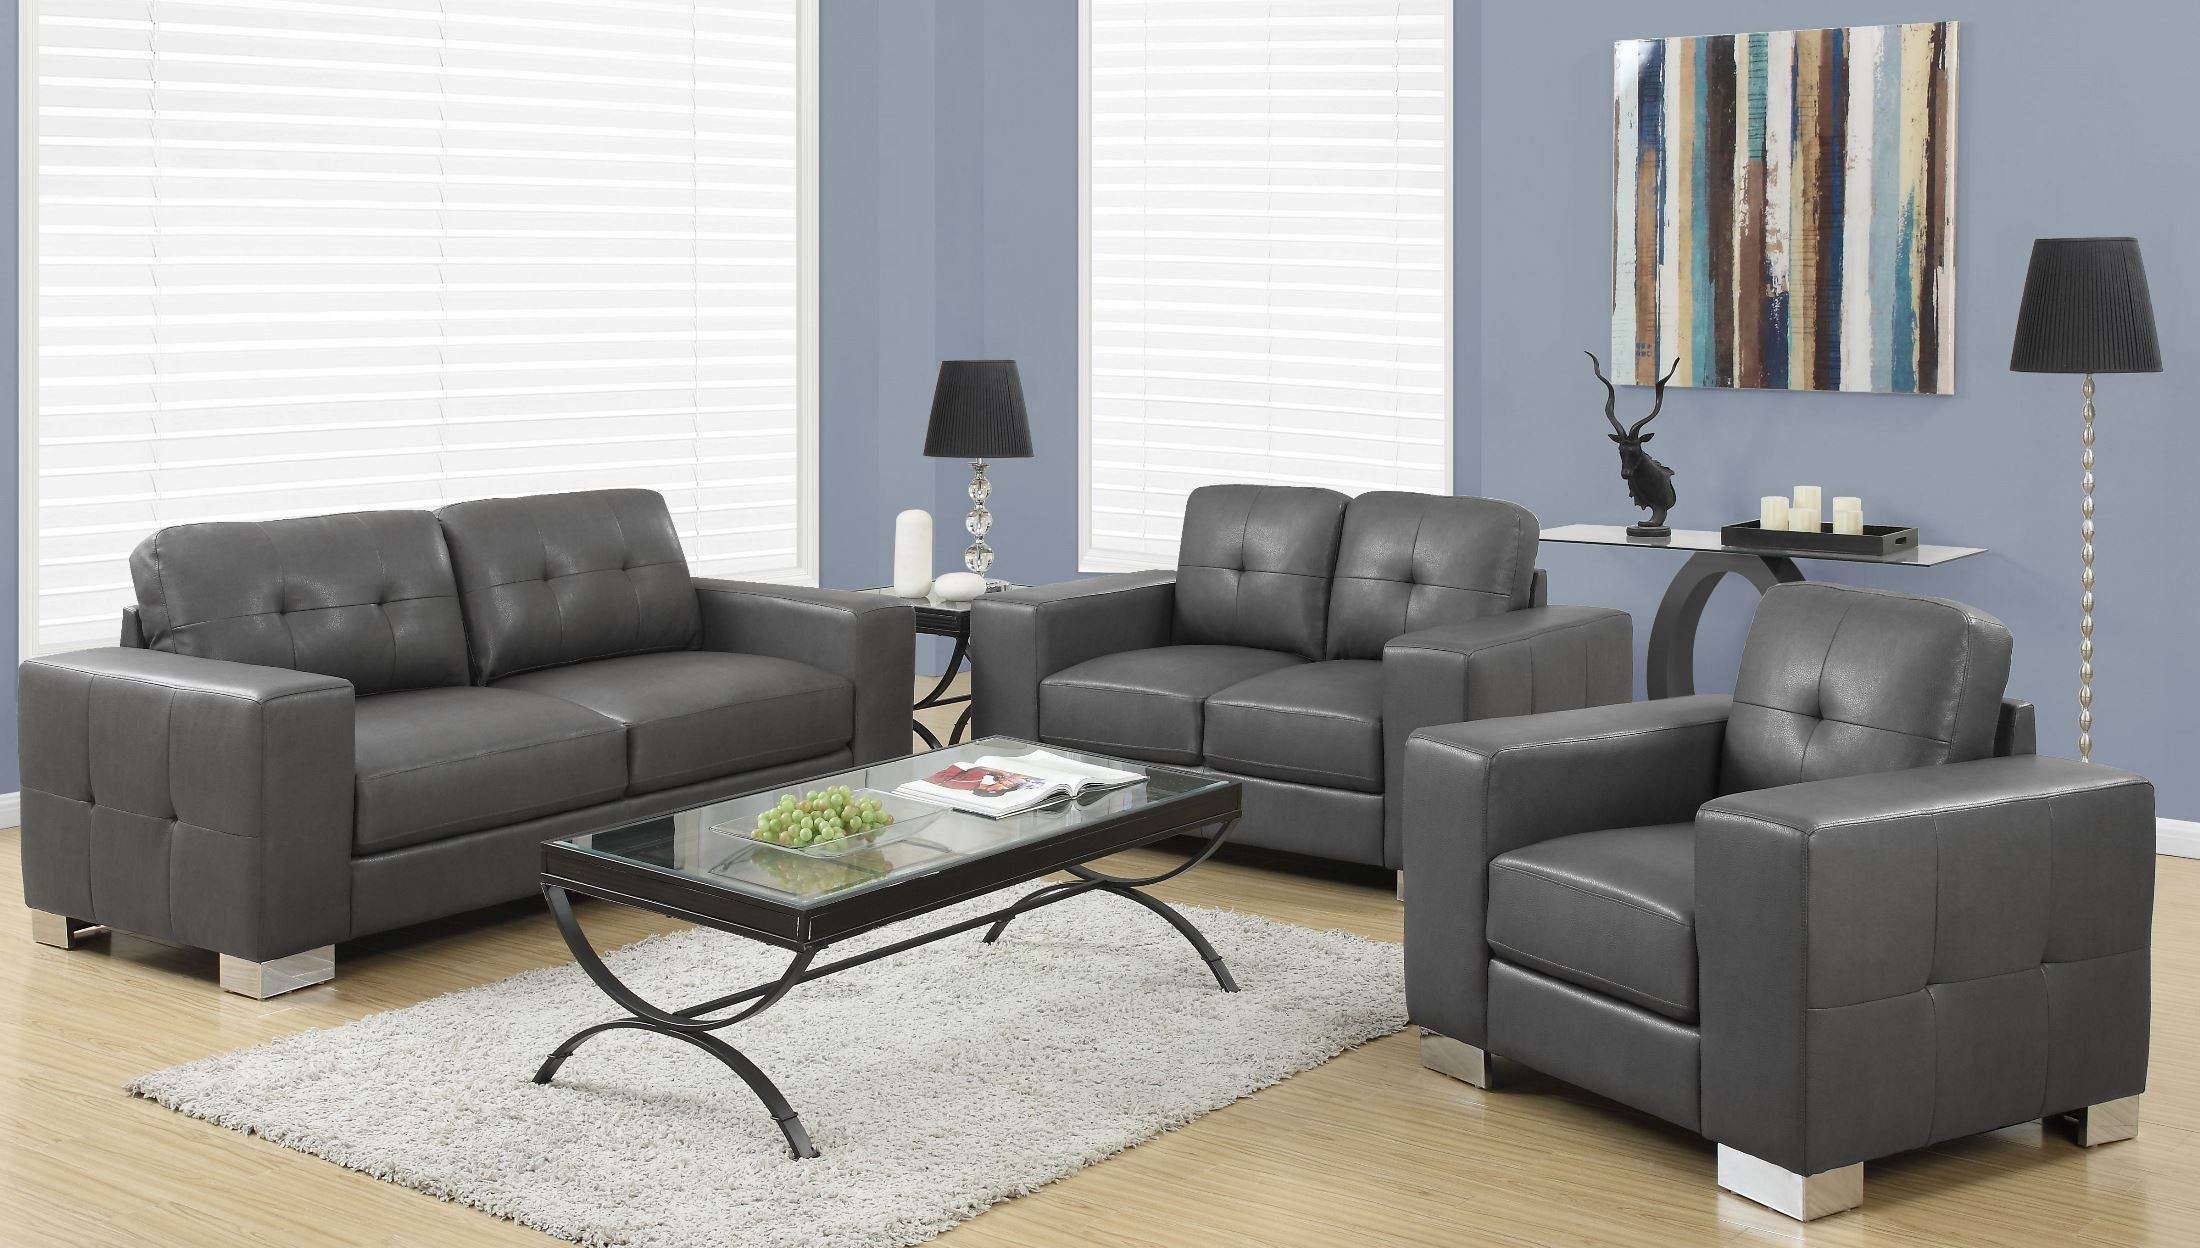 8223gy charcoal gray bonded leather living room set from monarch coleman furniture. Black Bedroom Furniture Sets. Home Design Ideas